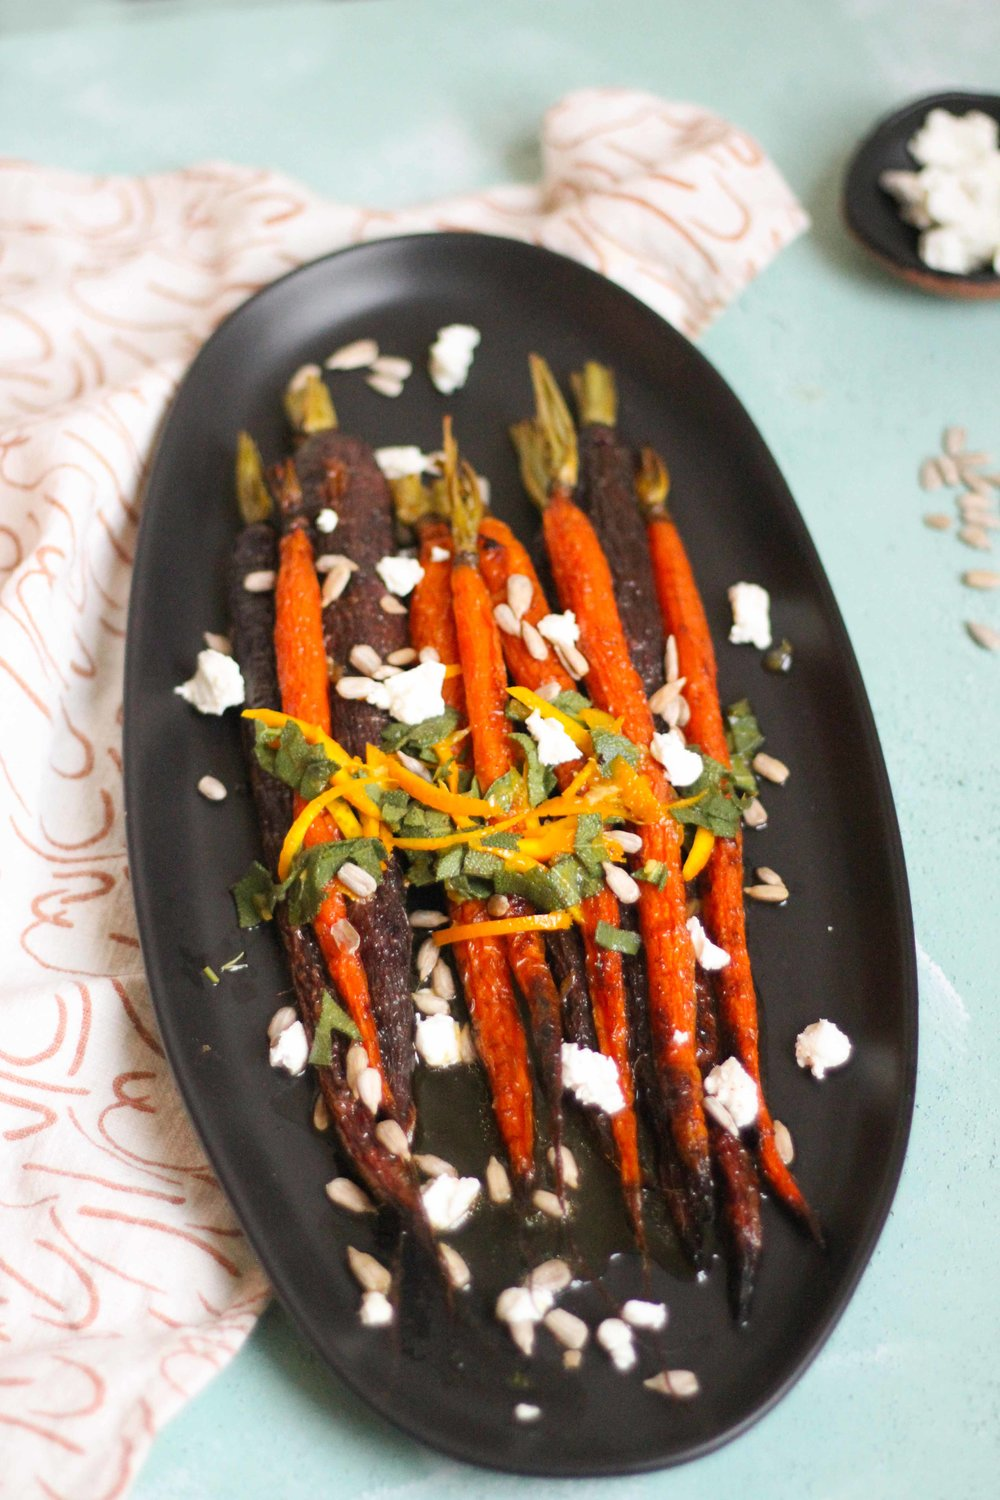 Roasted carrots with sage vinaigrette